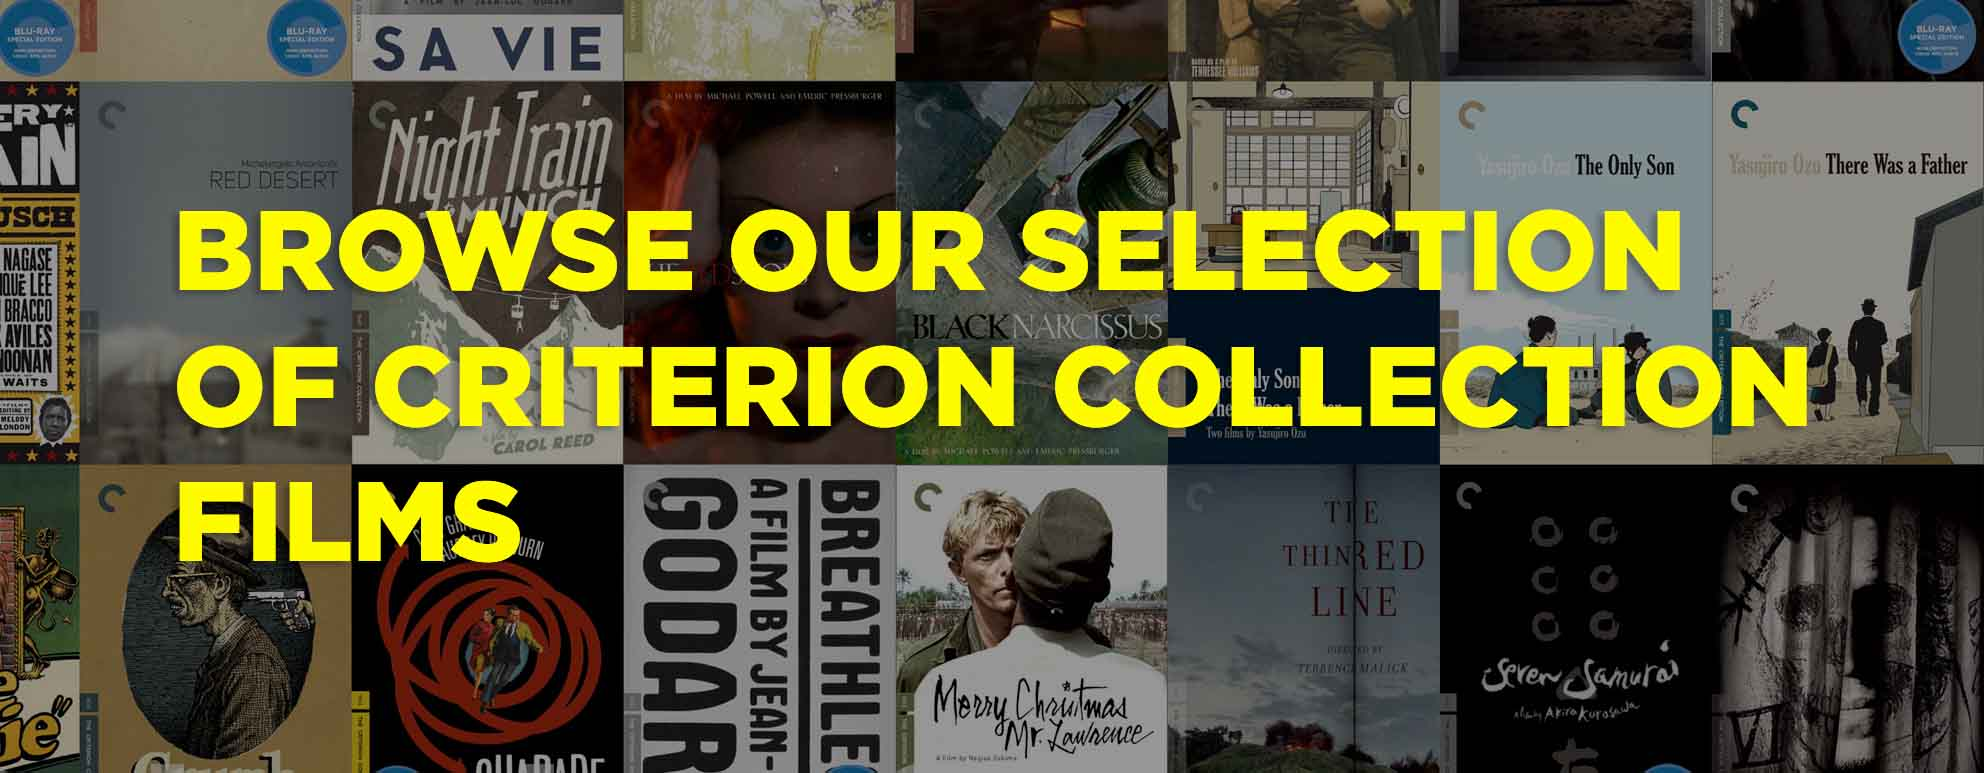 Browse our selection of Criterion Collection Films!